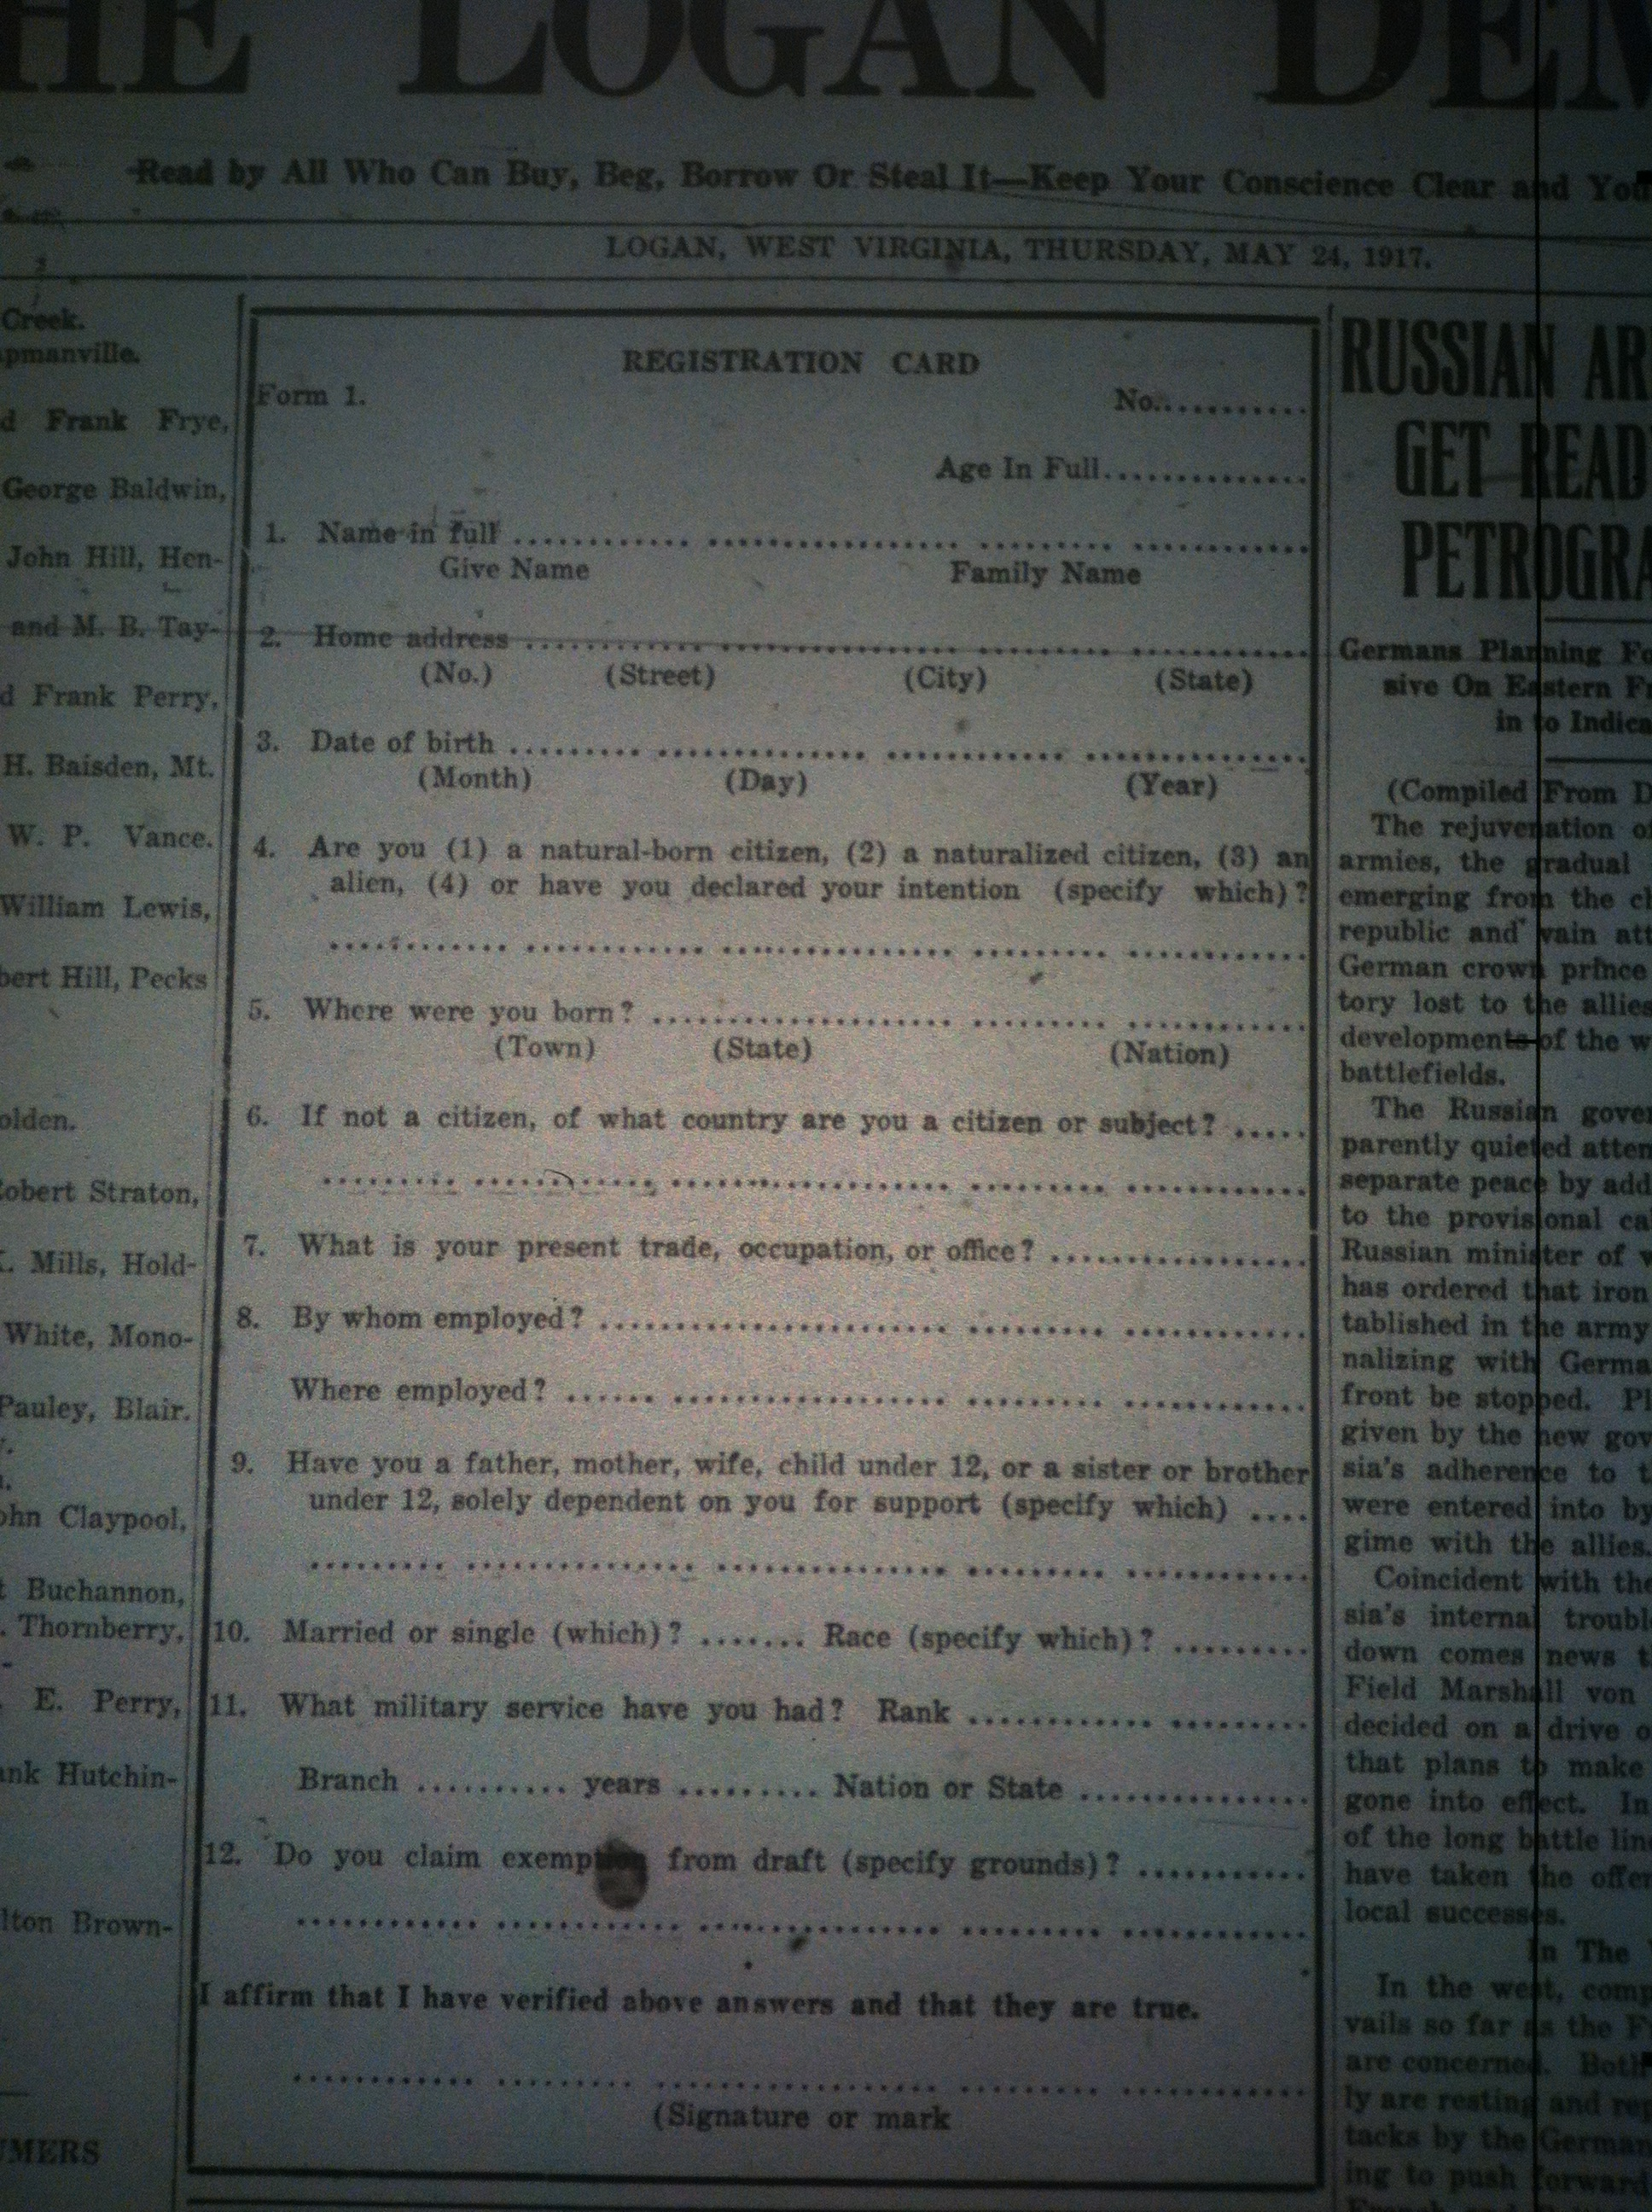 WWI Registration Card LD 05.24.1917 6.JPG